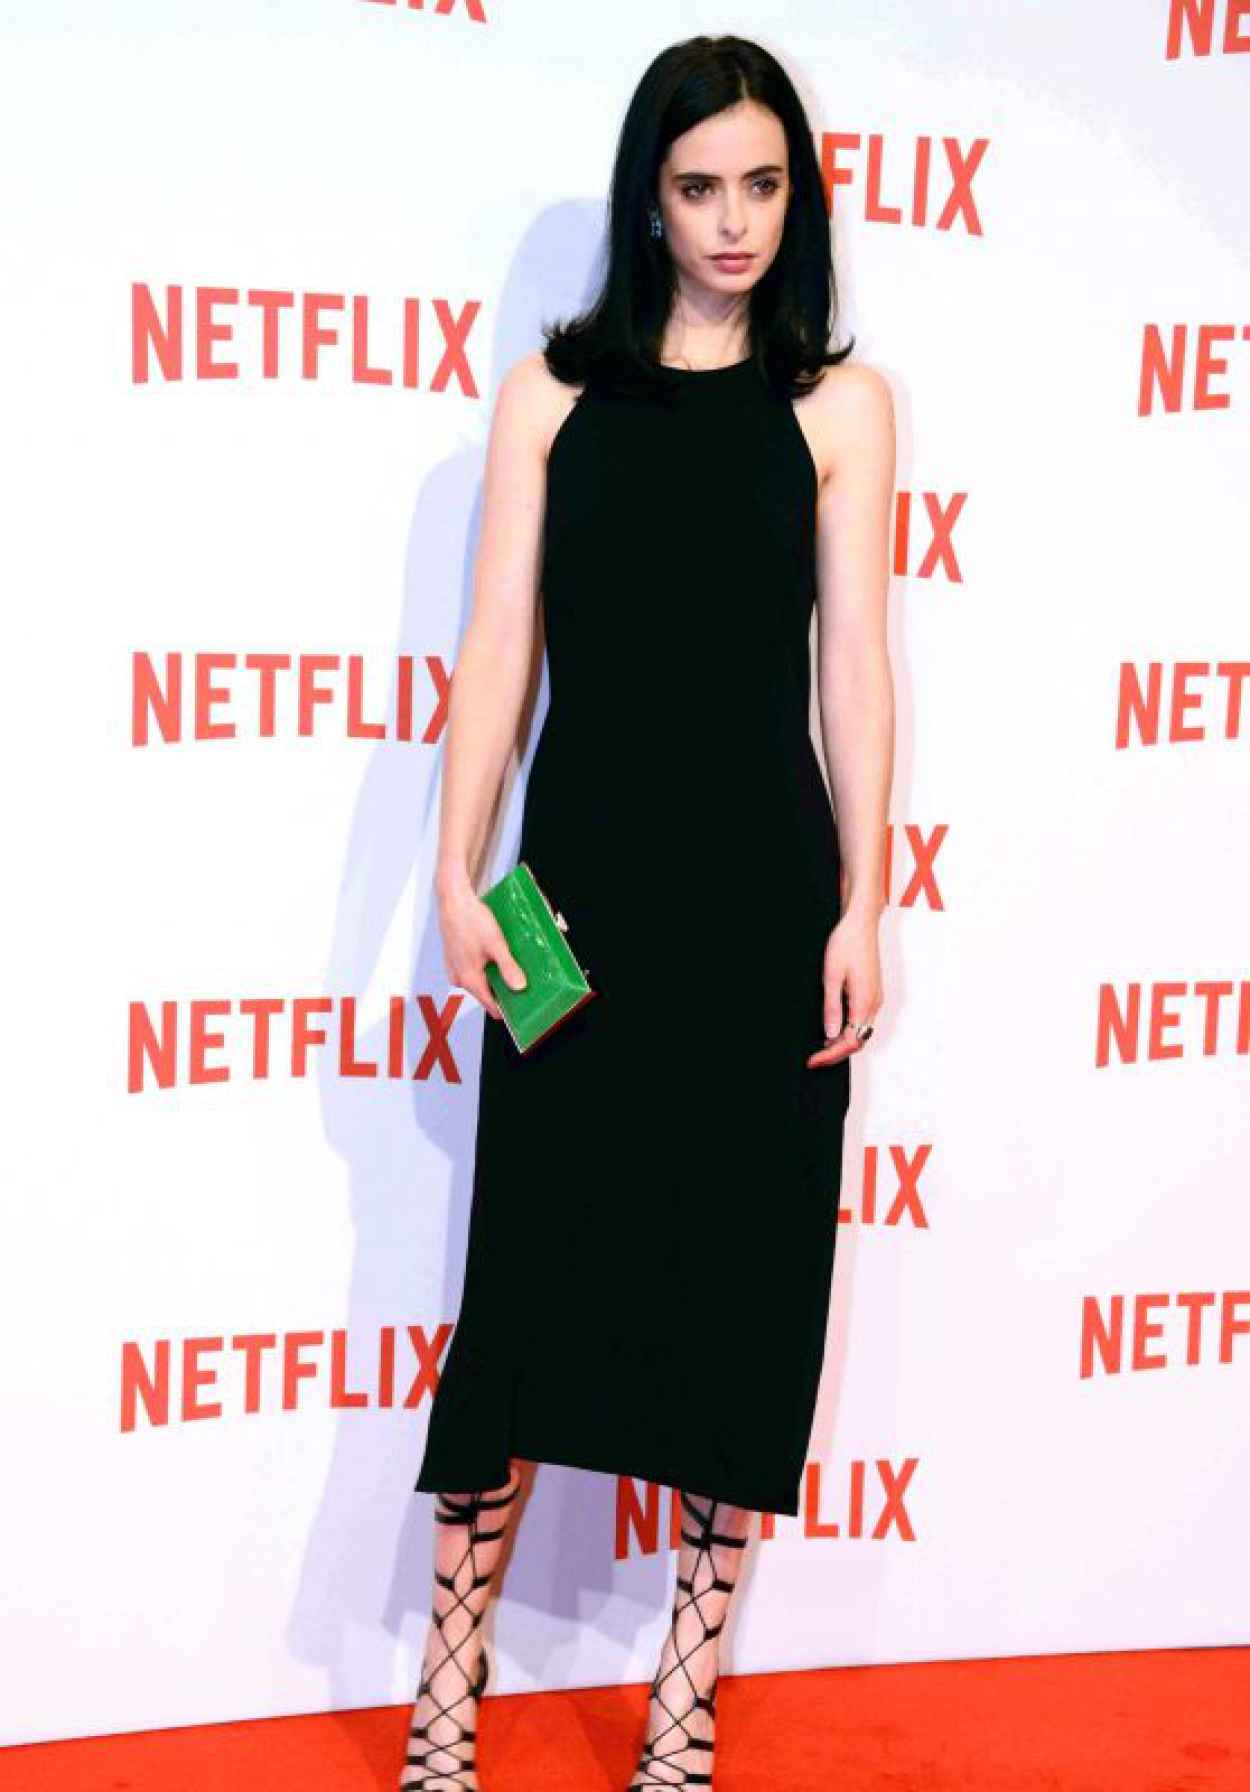 Krysten Ritter - The Netflix Launch at Palazzo Del Ghiaccio in Milan, Italy, October 2015-1